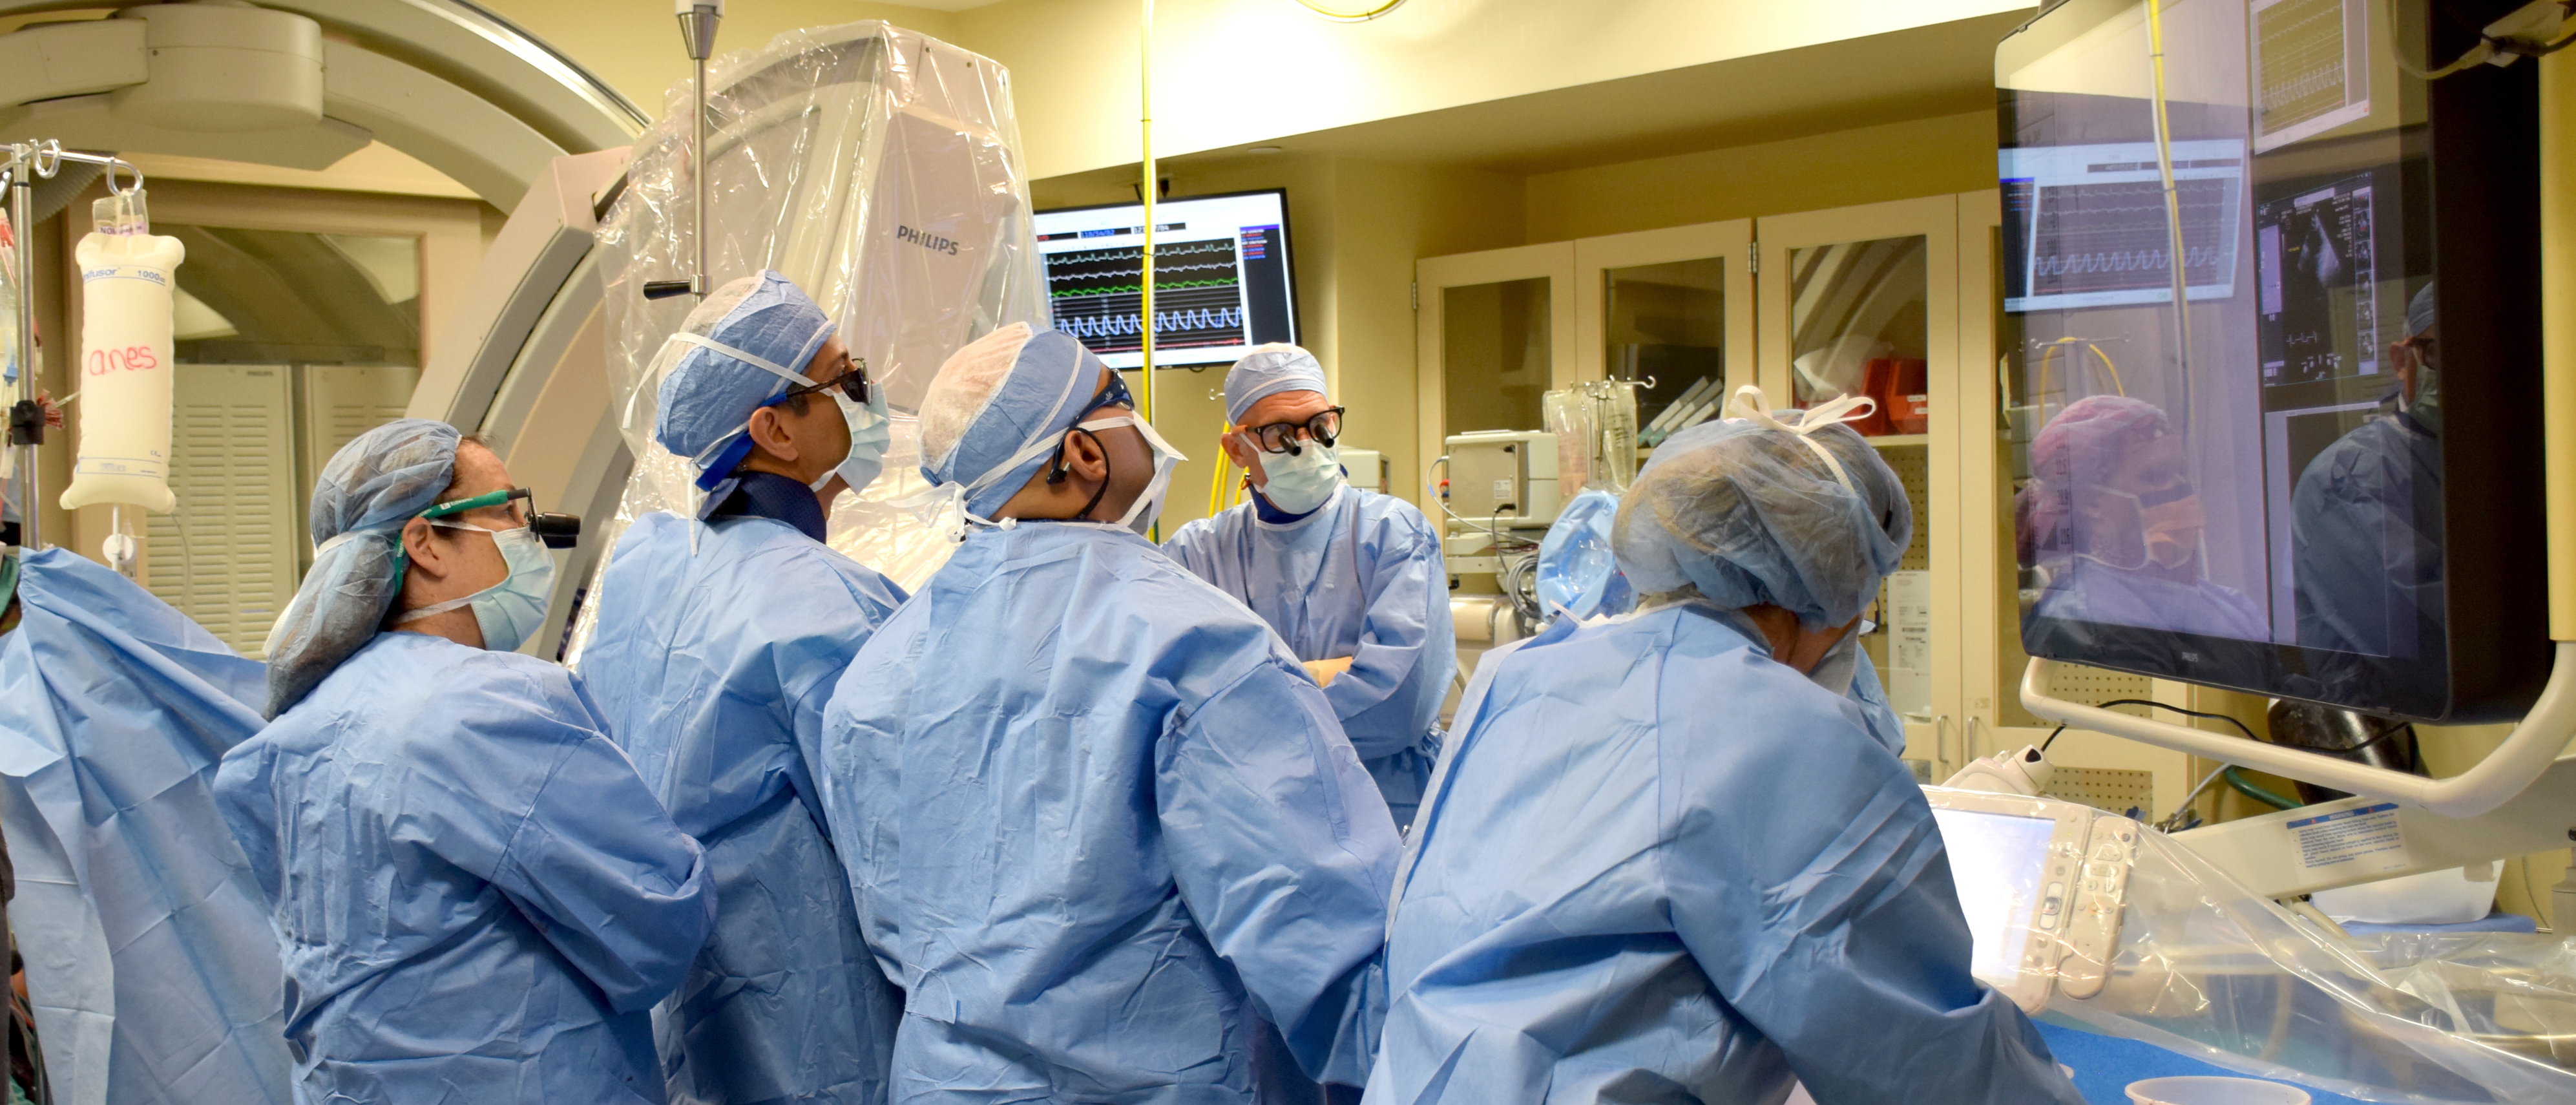 Dr. Haghighat and Dr. Patel collaborate with cardiothoracic surgeons